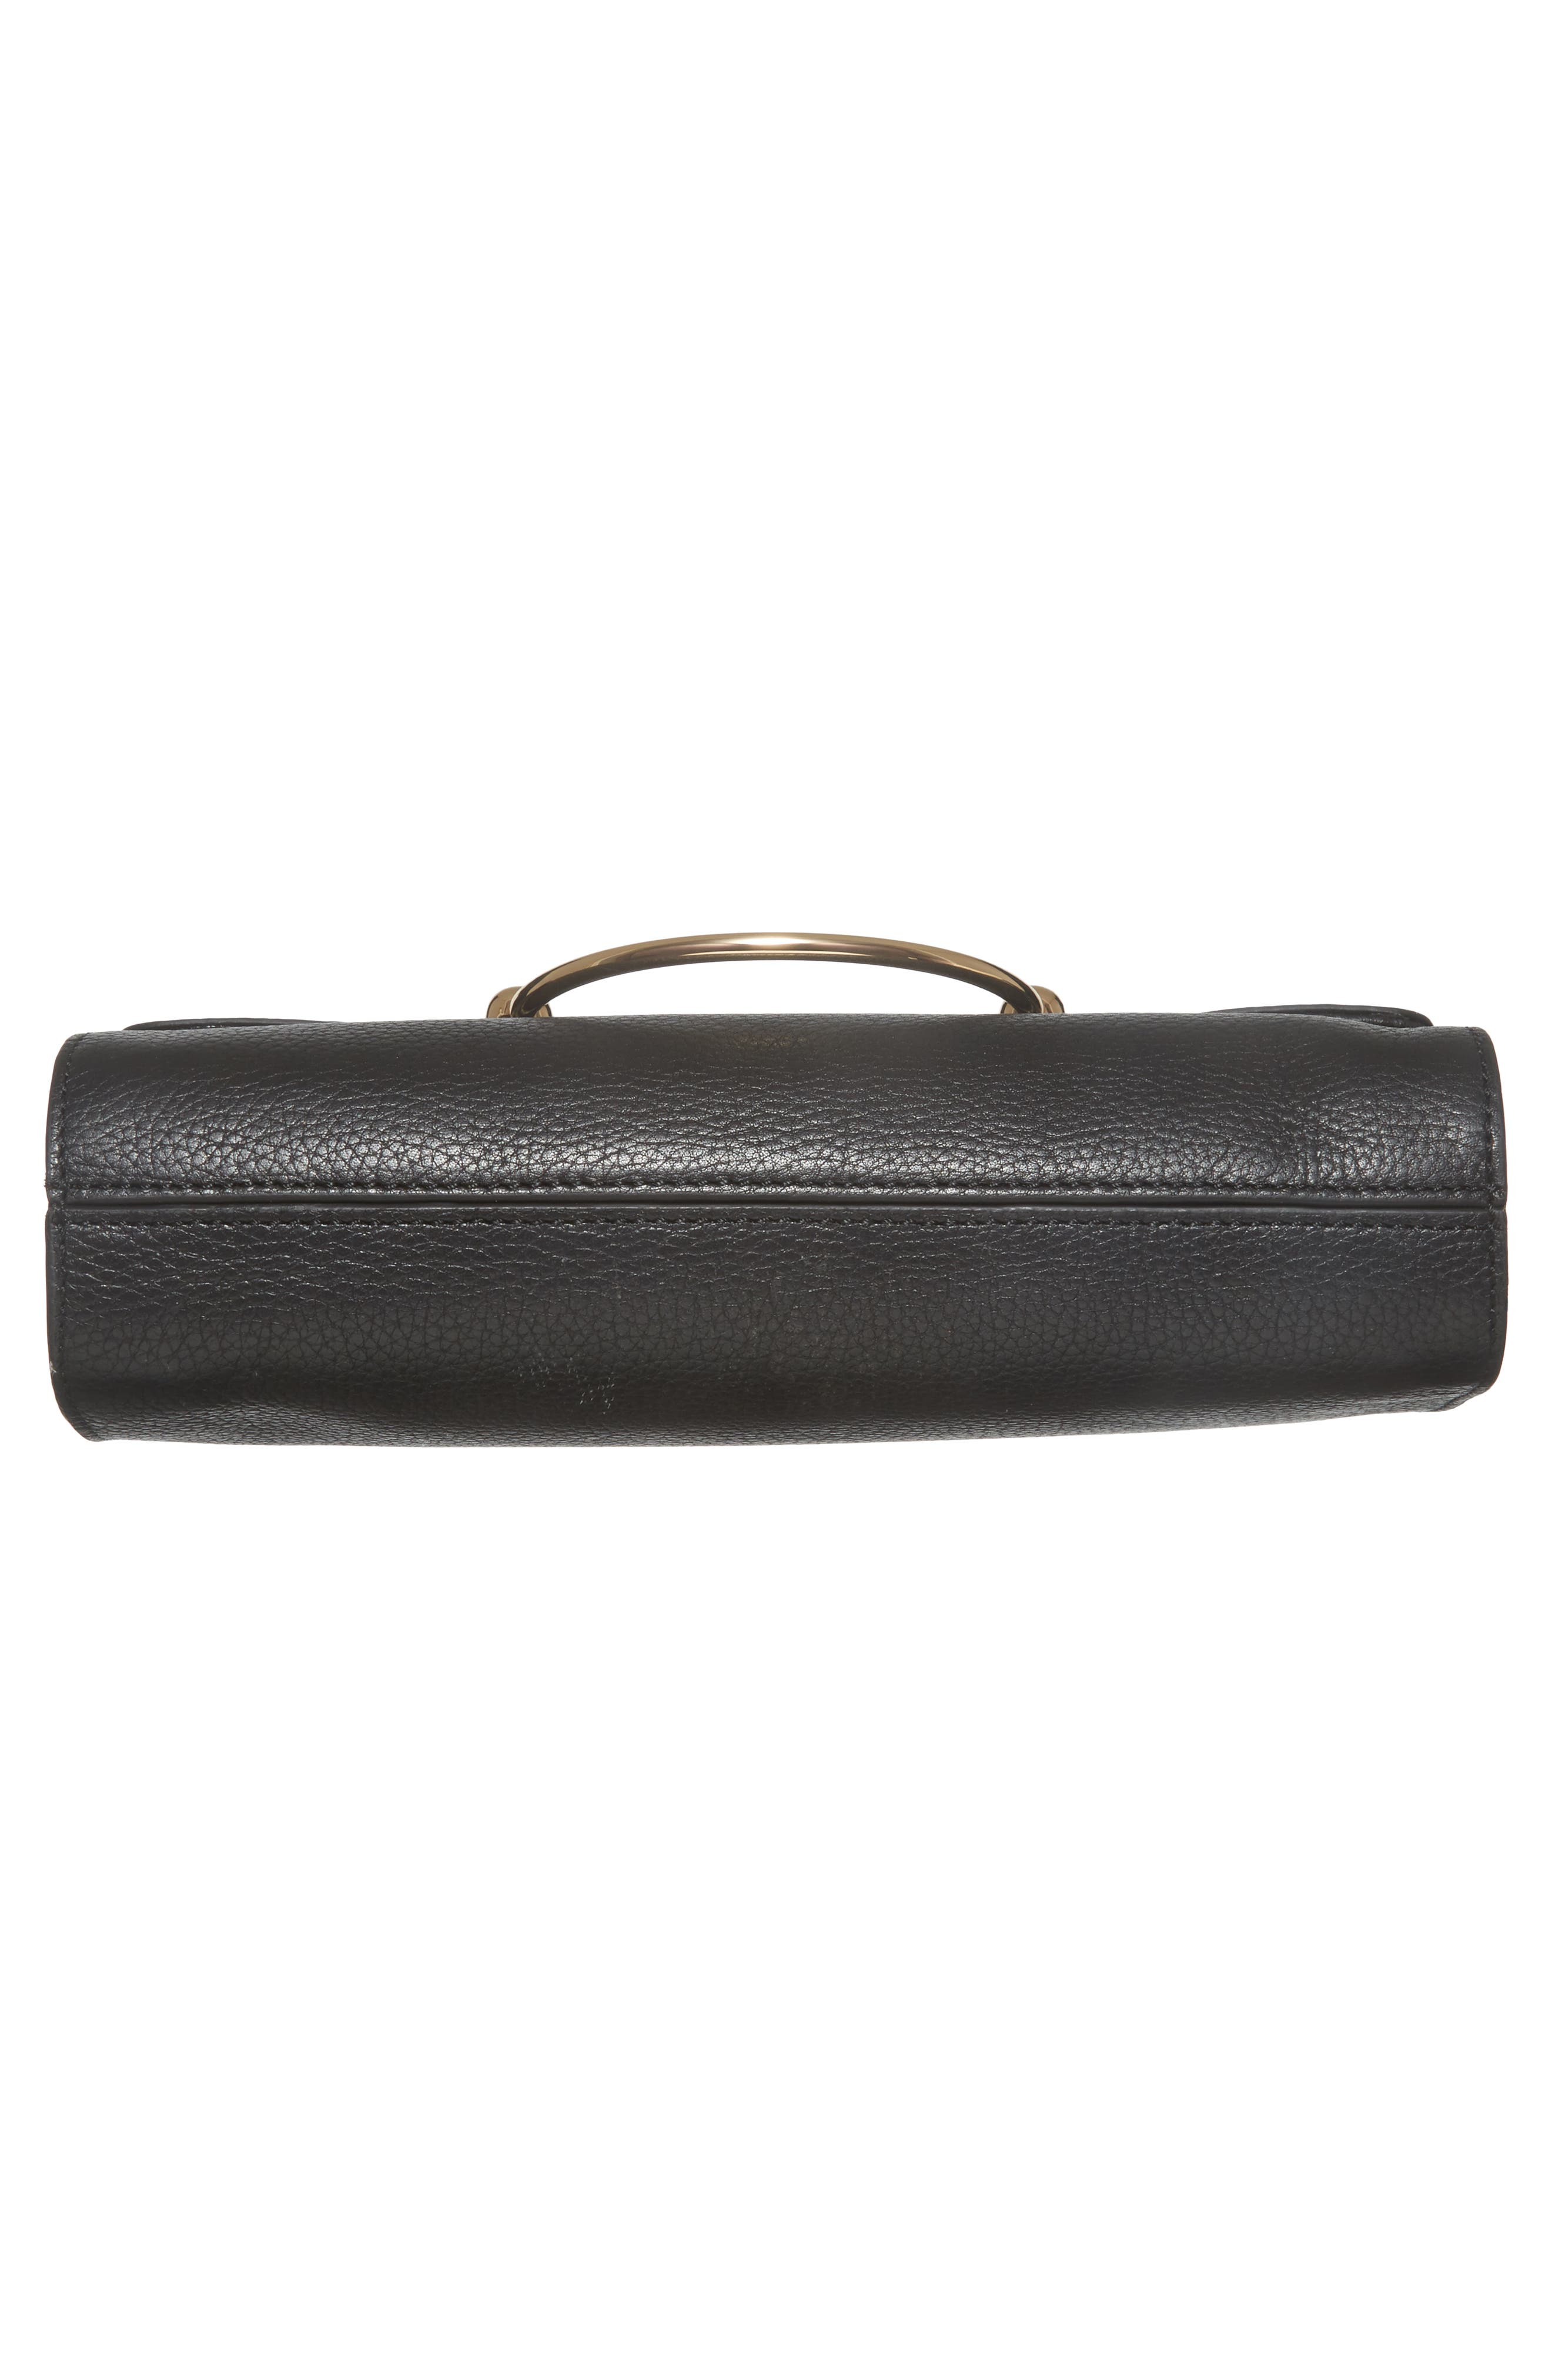 Astor Pebbled Leather Flap Clutch,                             Alternate thumbnail 21, color,